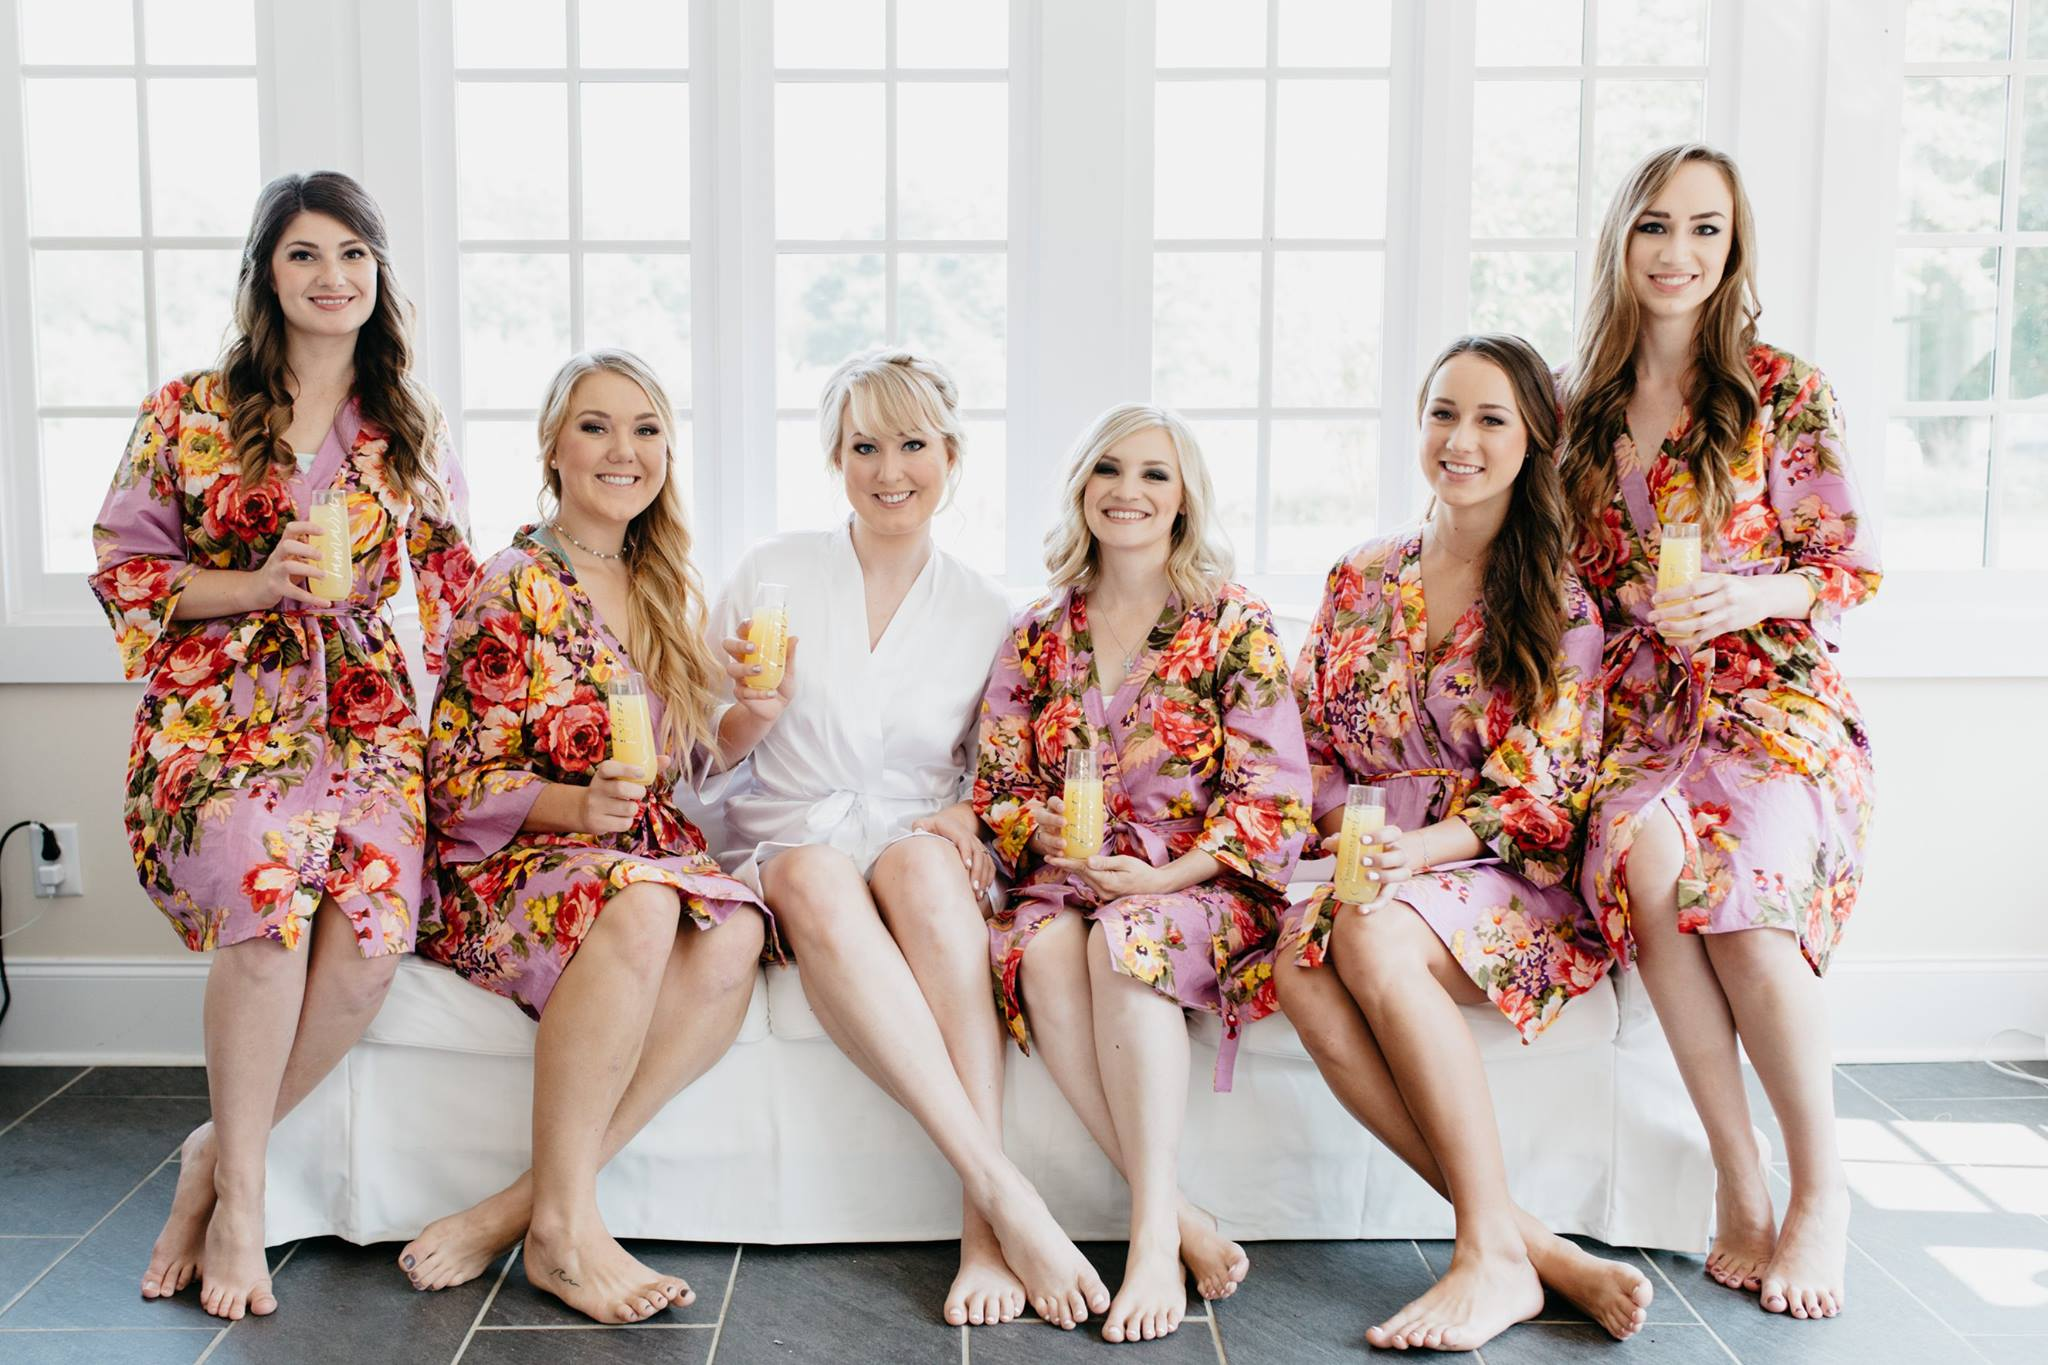 bride and bridesmaids getting ready in floral robes with mimosas